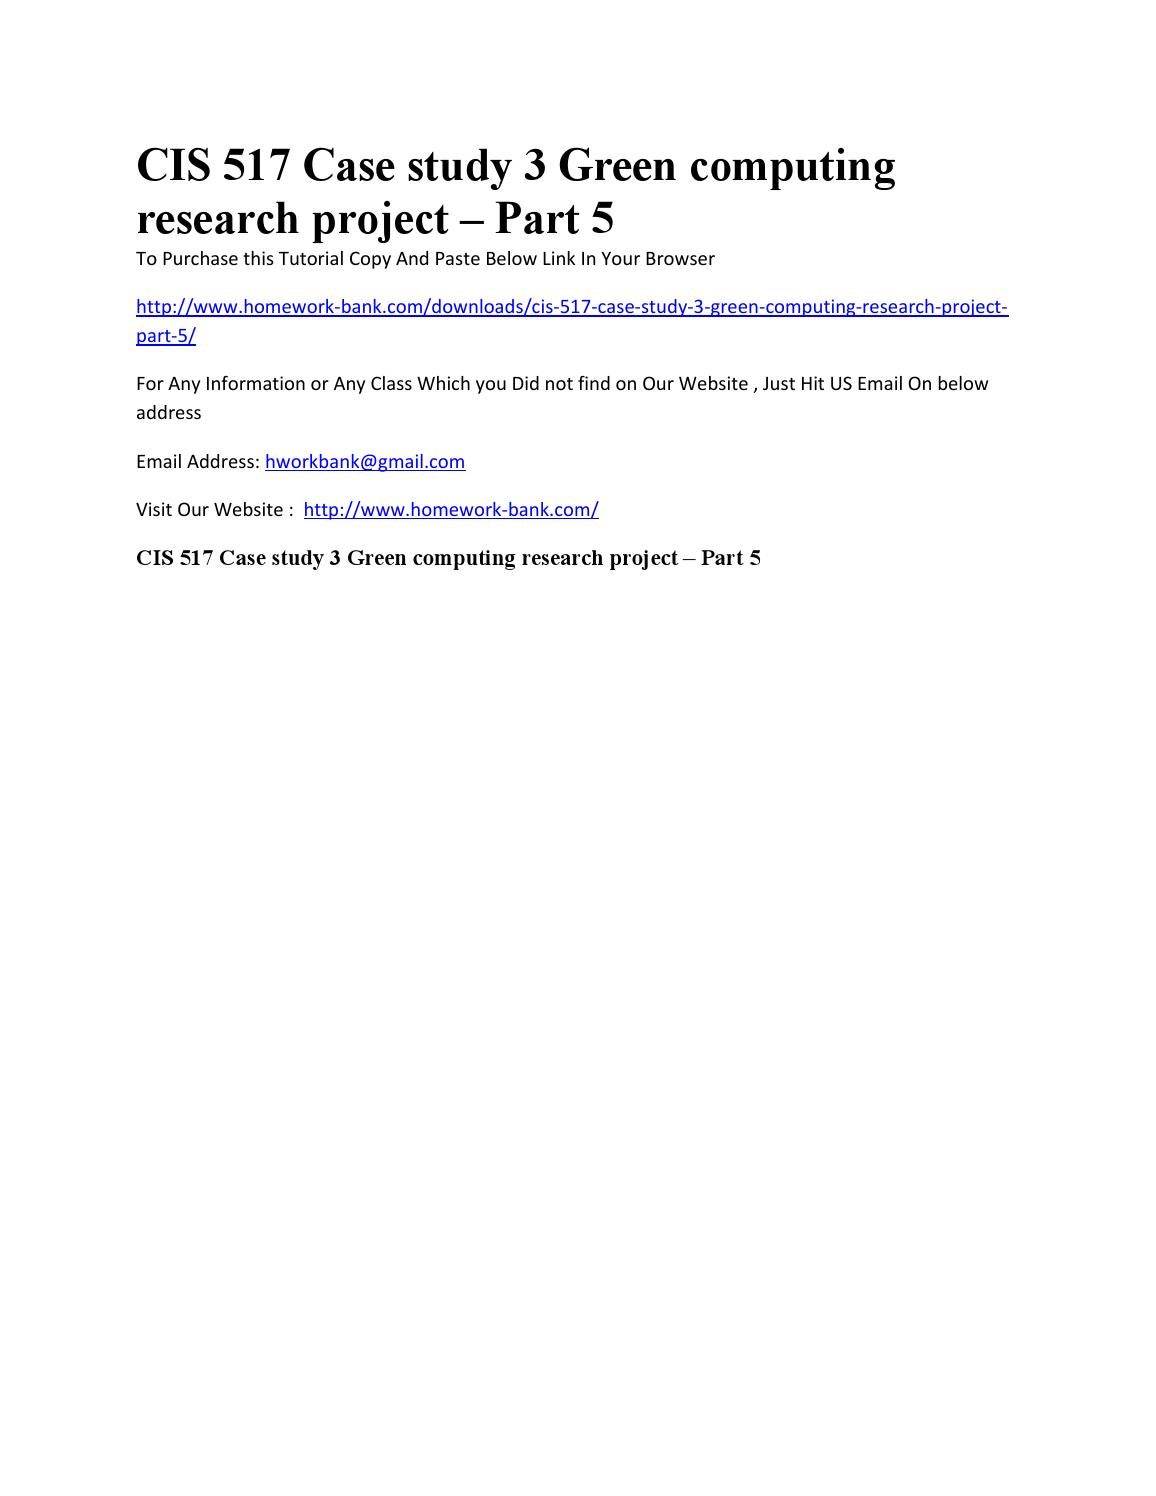 green computing research project 2